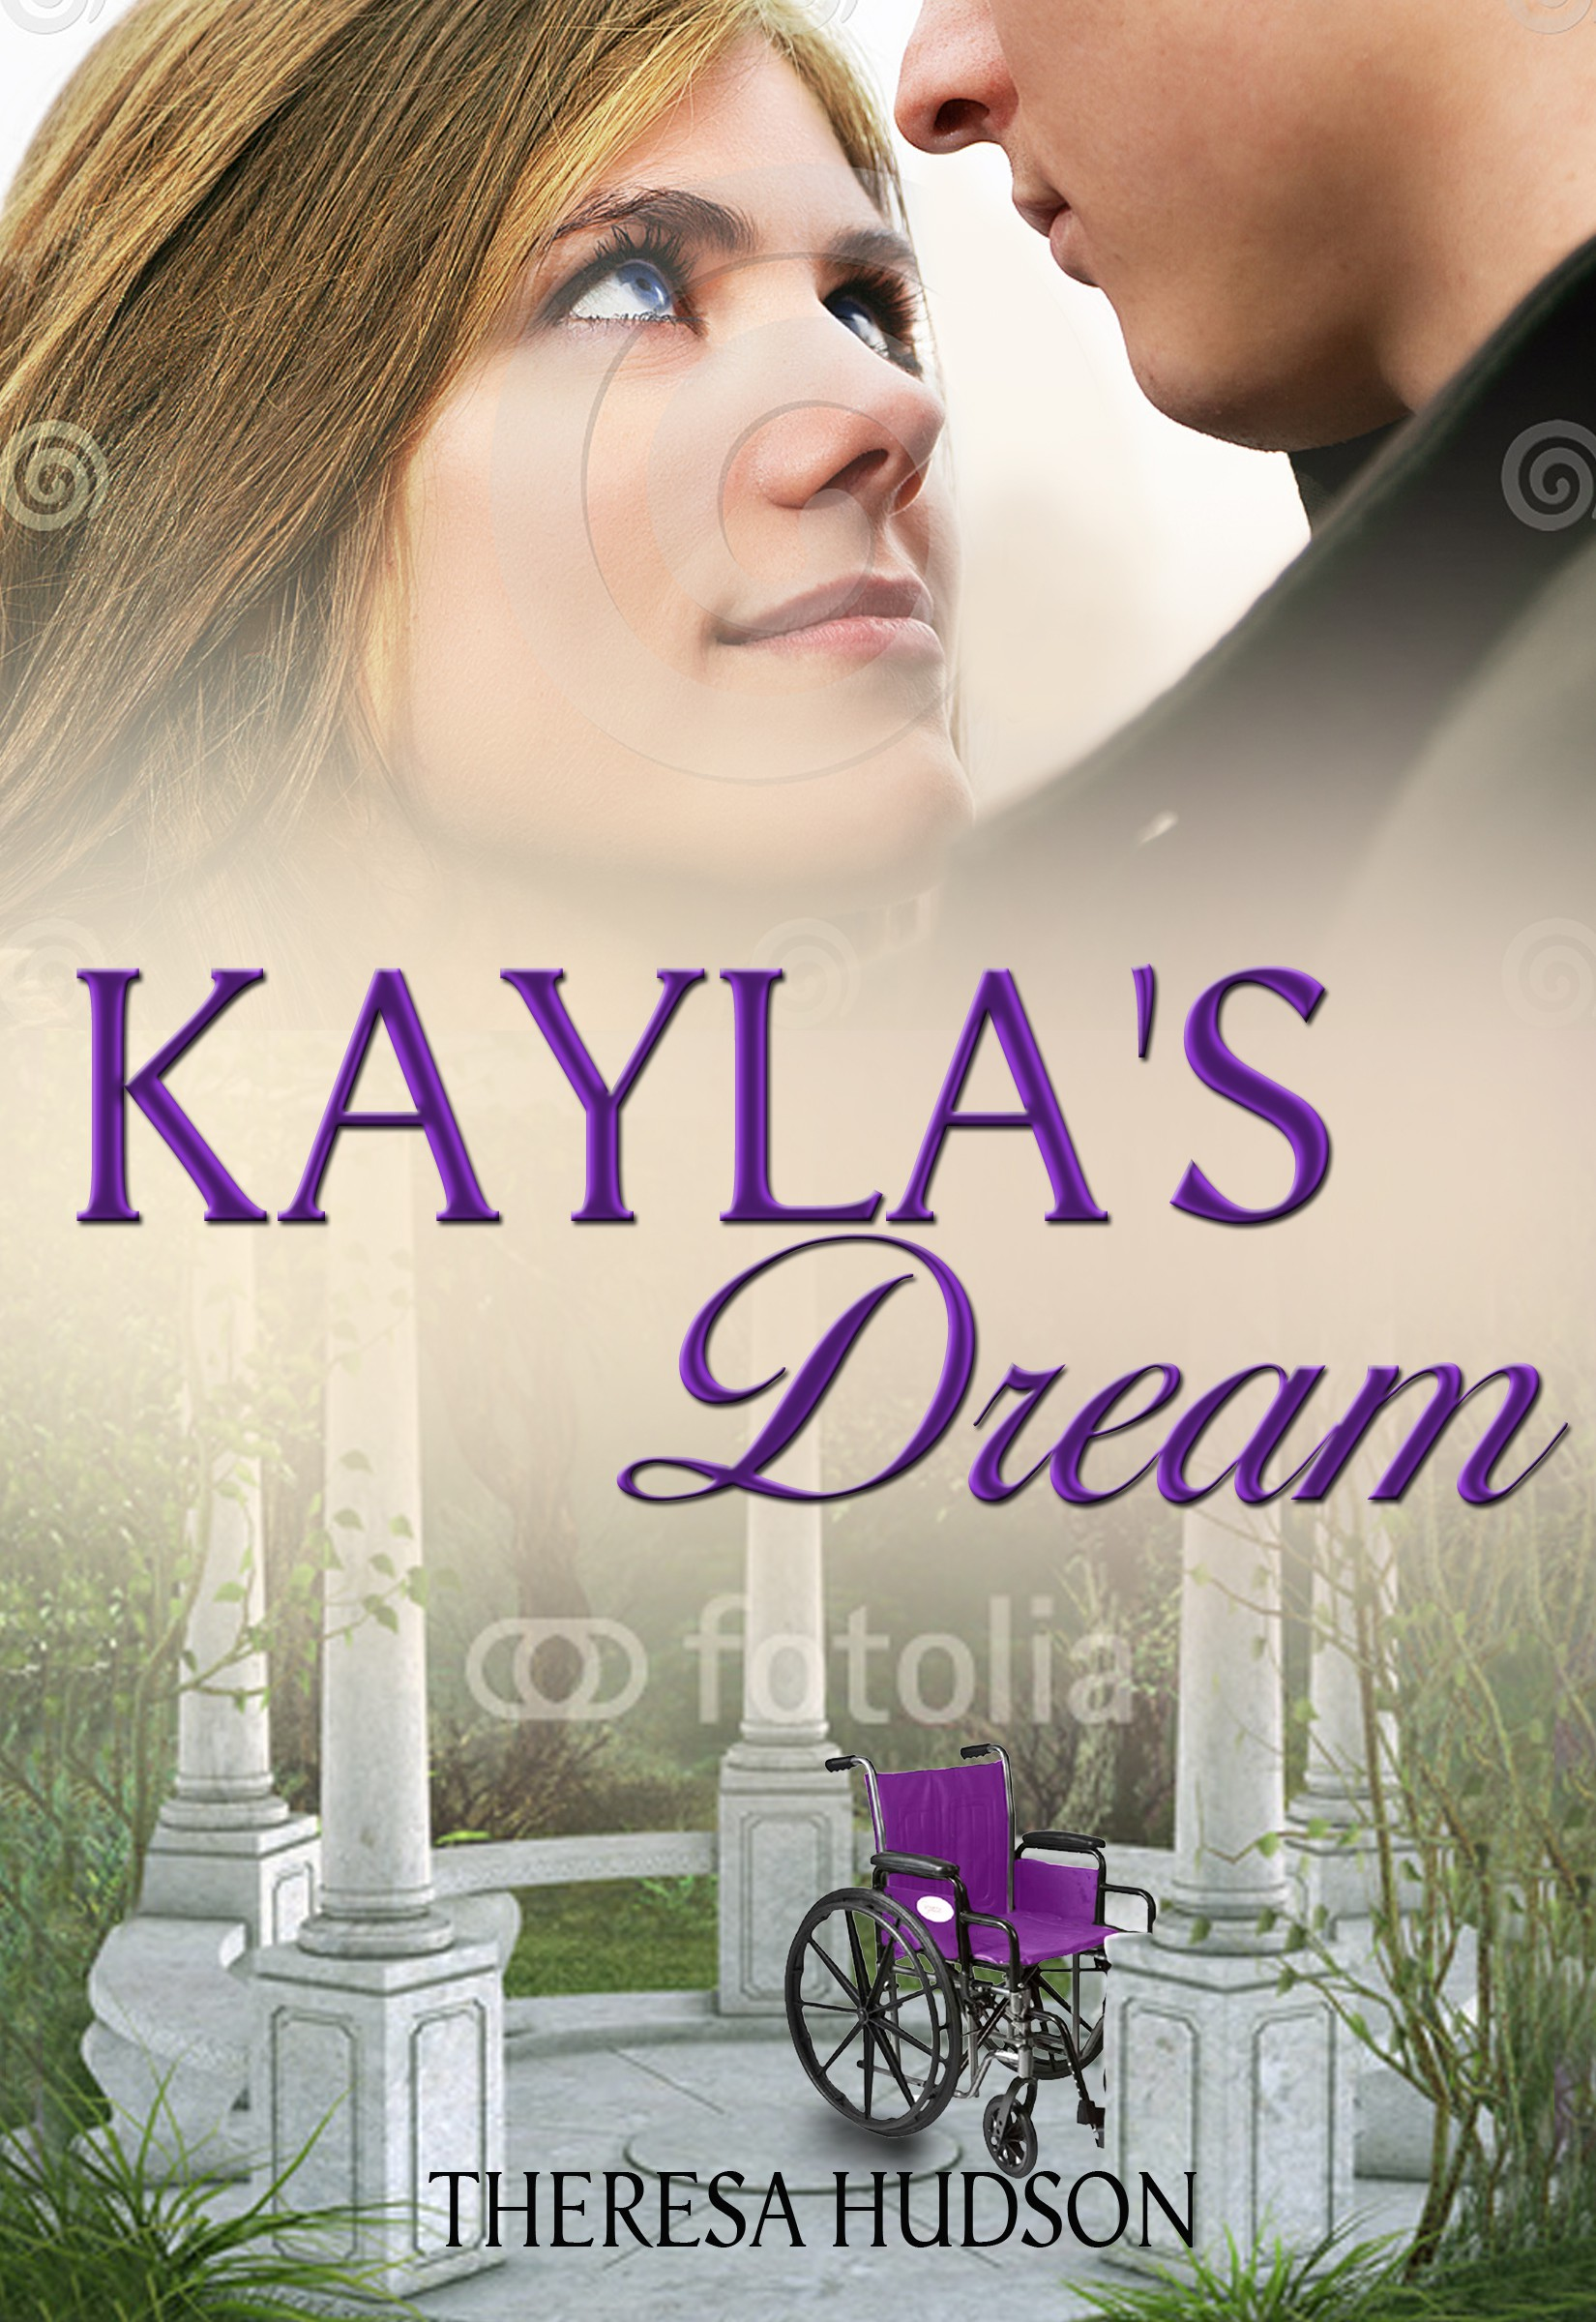 Kayla's Dream Book Cover extraordinaire-make her rise beyond cerebral palsy.